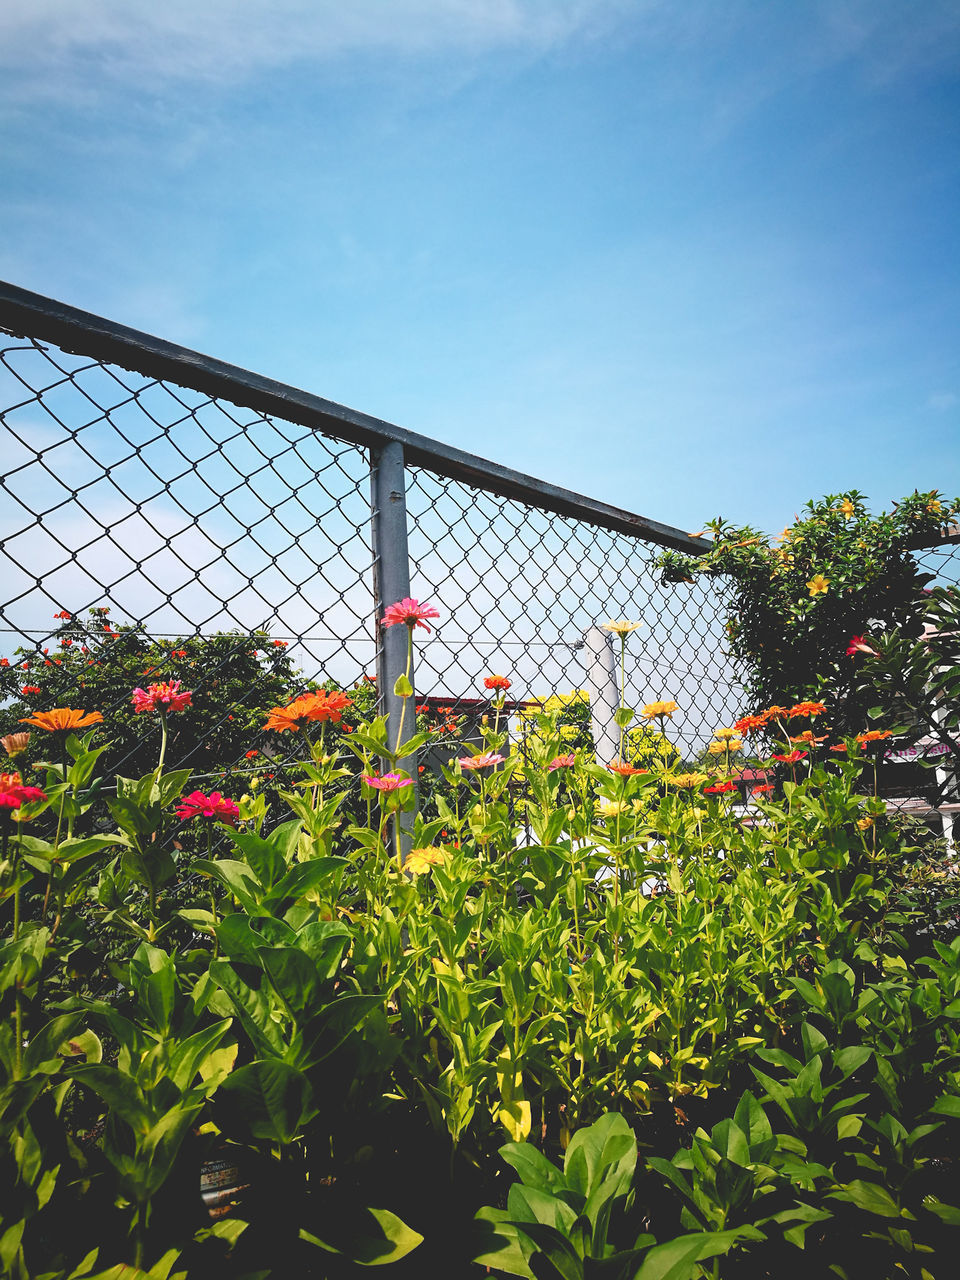 VIEW OF FLOWERING PLANTS AGAINST FENCE